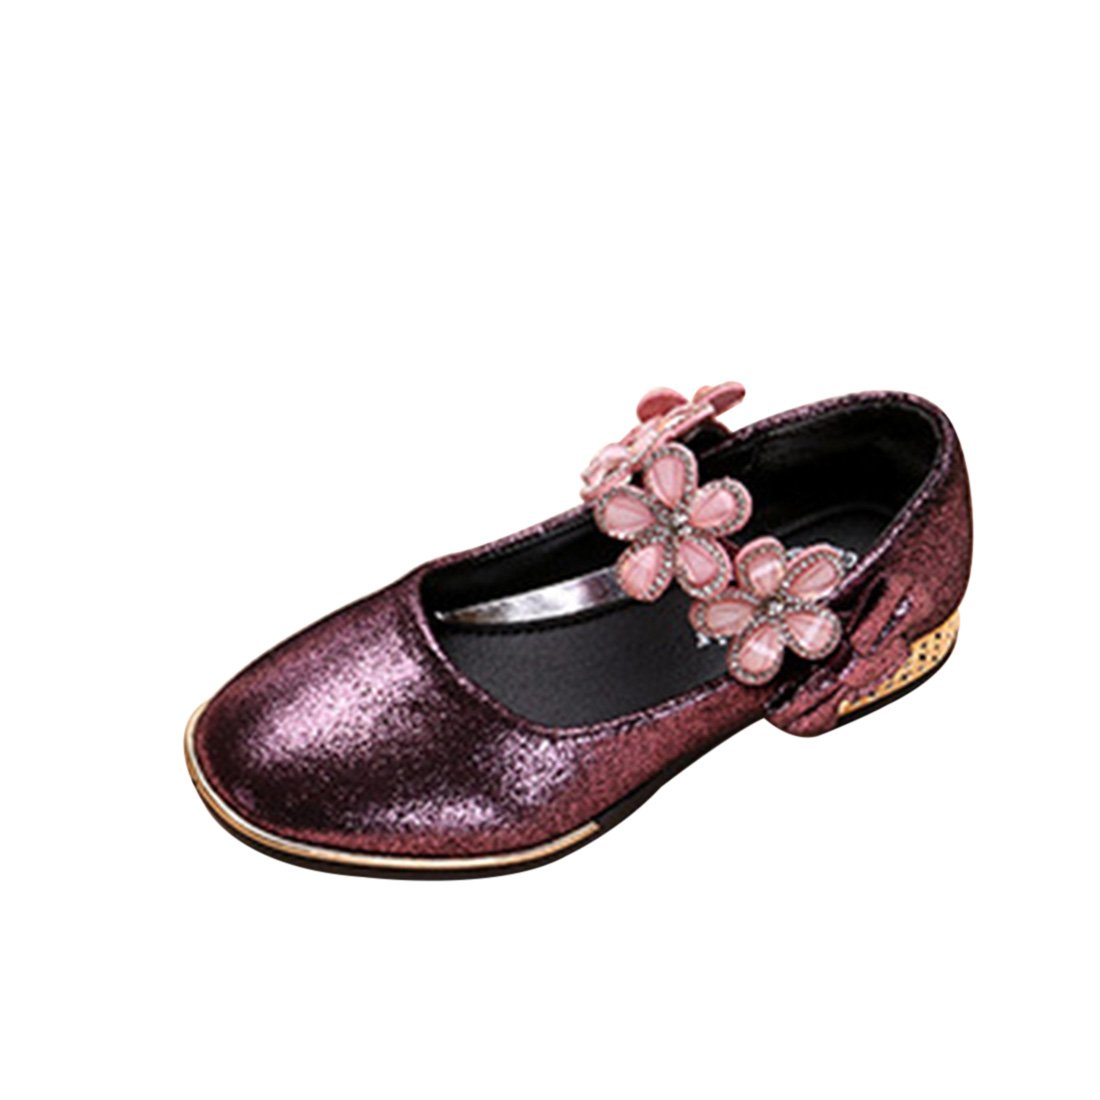 YIBLBOX Kids Tpddler Girls Ballet Flats Shoes Mary Janes Wedding For Party Flowers Princess Dress Shoes